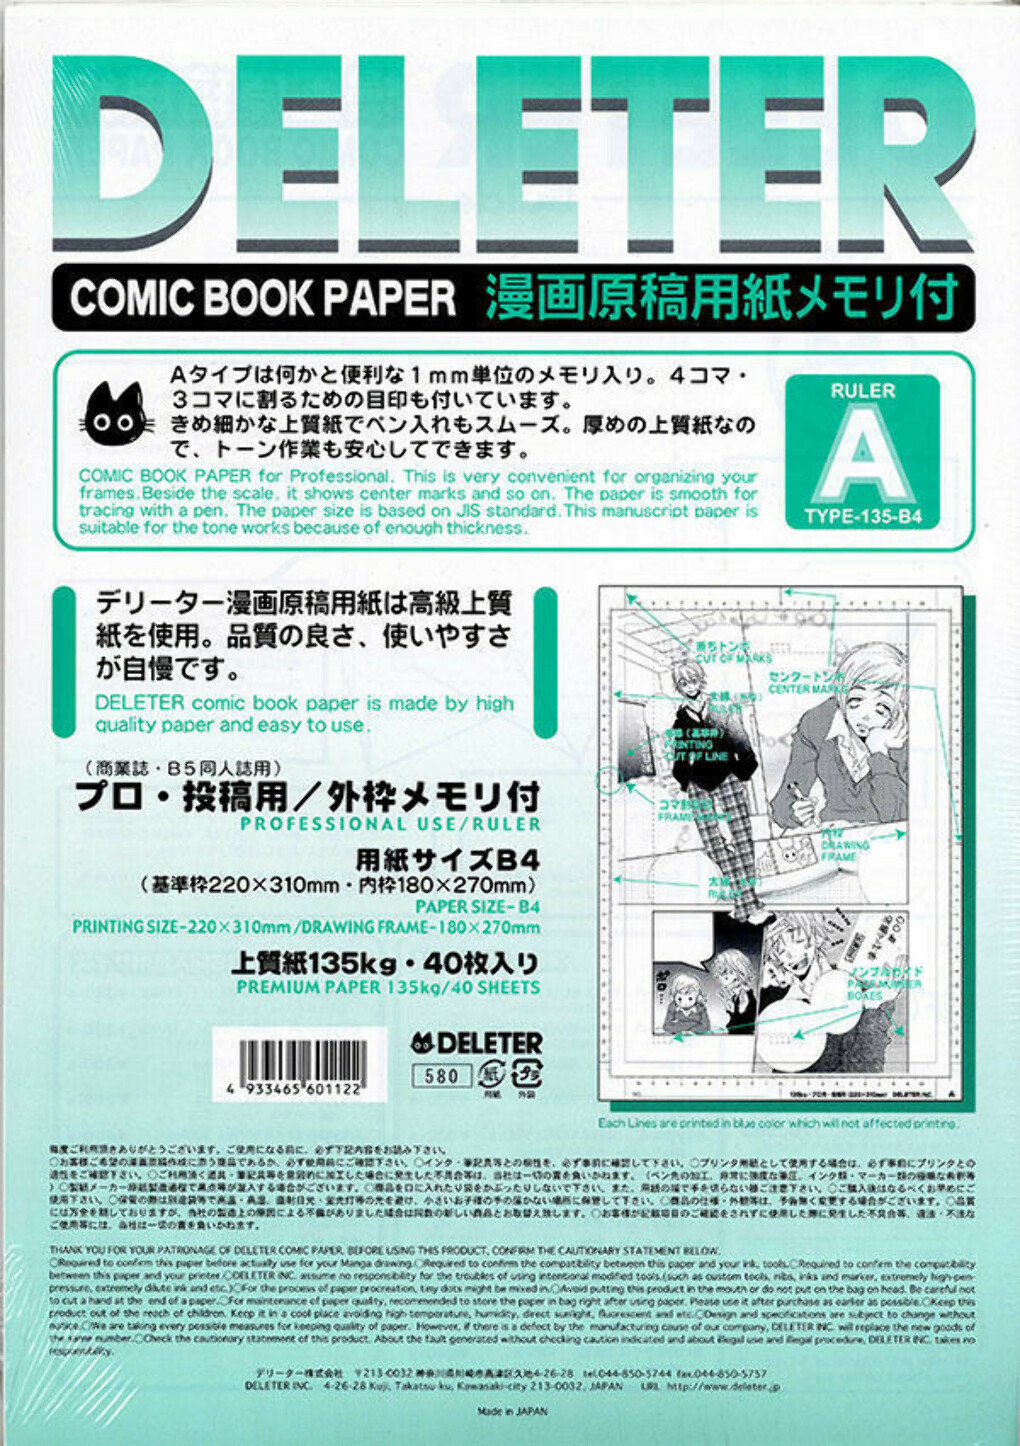 [DELETER MANGA SHOP]Comic Paper, B4, with scaleA, 135kg Thick, 40 sheets (B4,A,135kg)